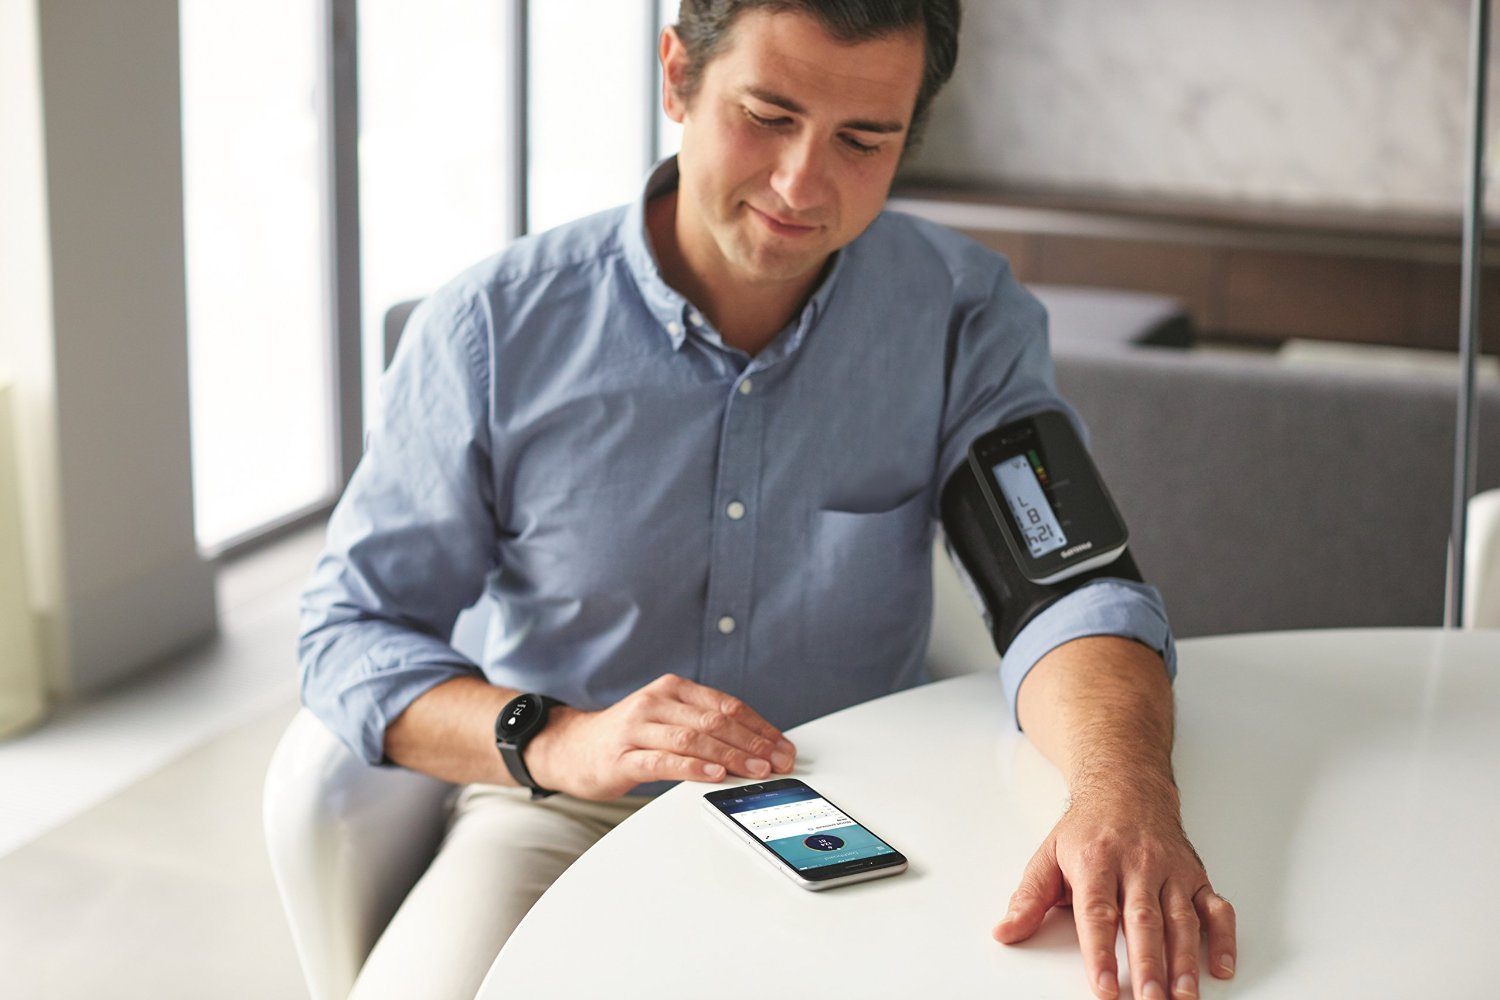 philips enters the wearables space with a suite of medical grade devices 5 - Philips enters the wearables space with a suite of medical grade devices